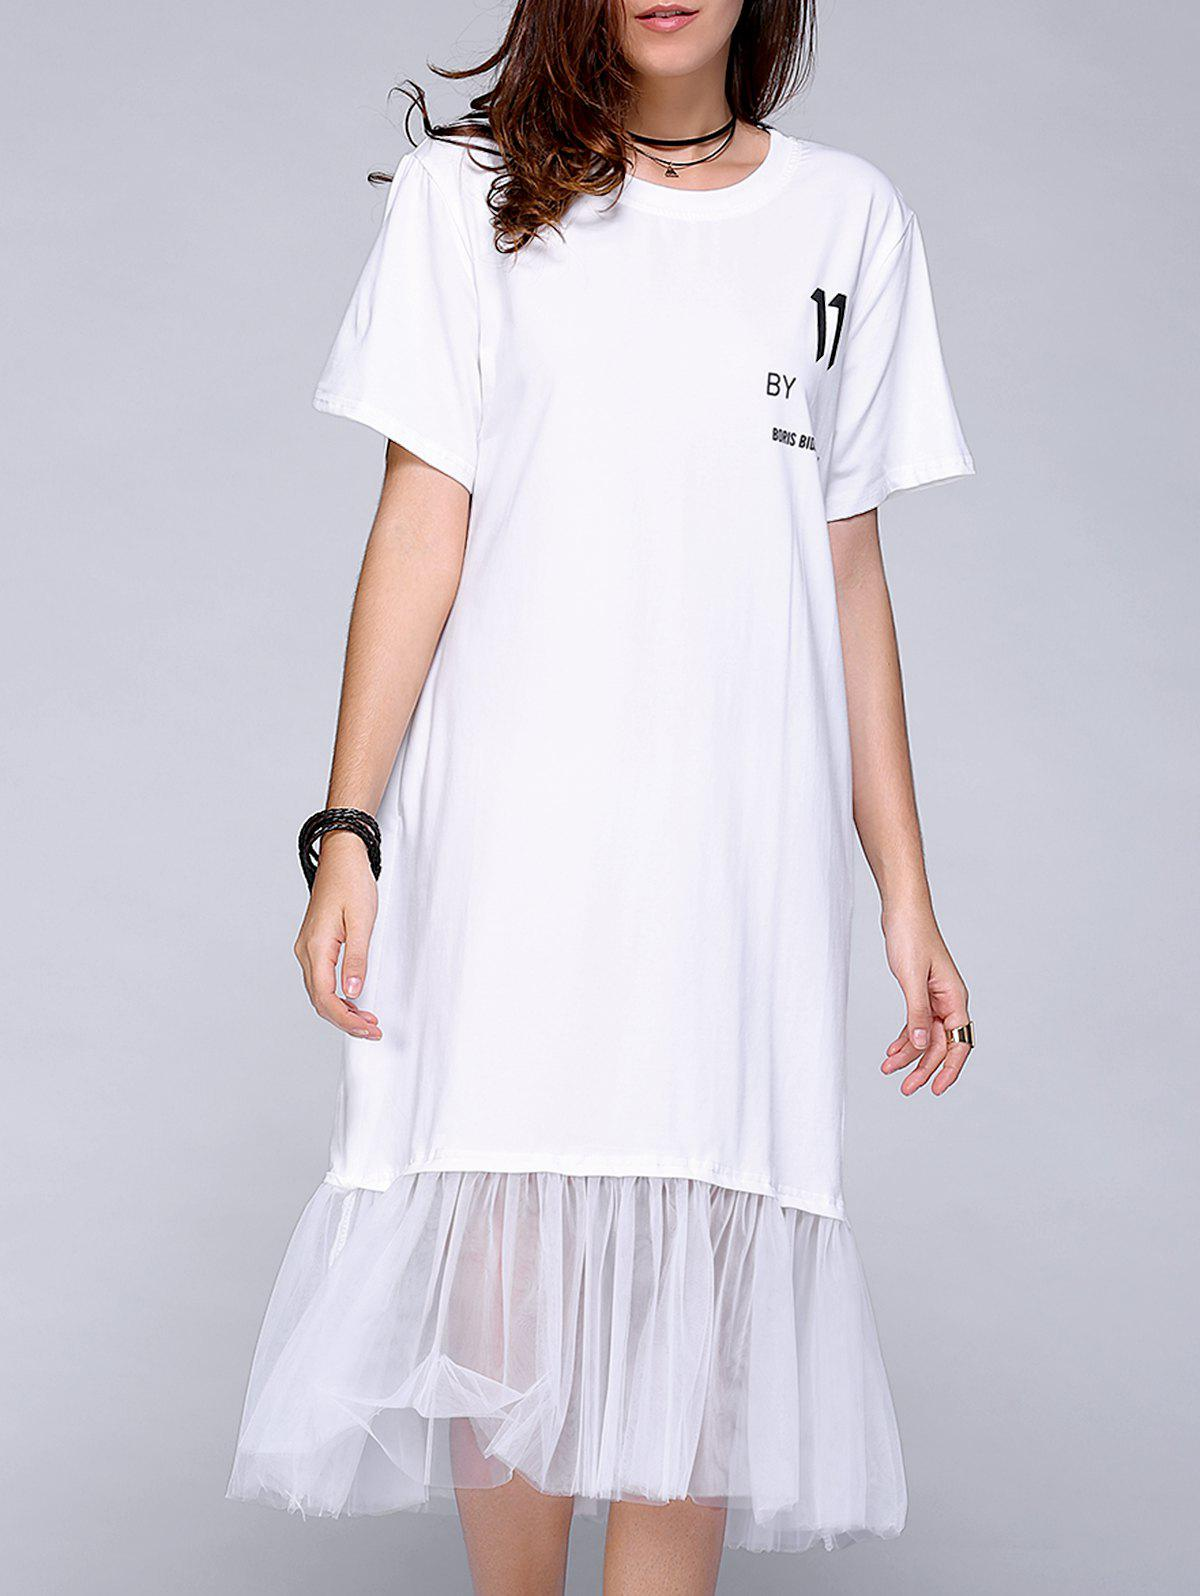 Brief Letter Print Short Sleeve Gauze Spliced Dress For Women - WHITE ONE SIZE(FIT SIZE XS TO M)